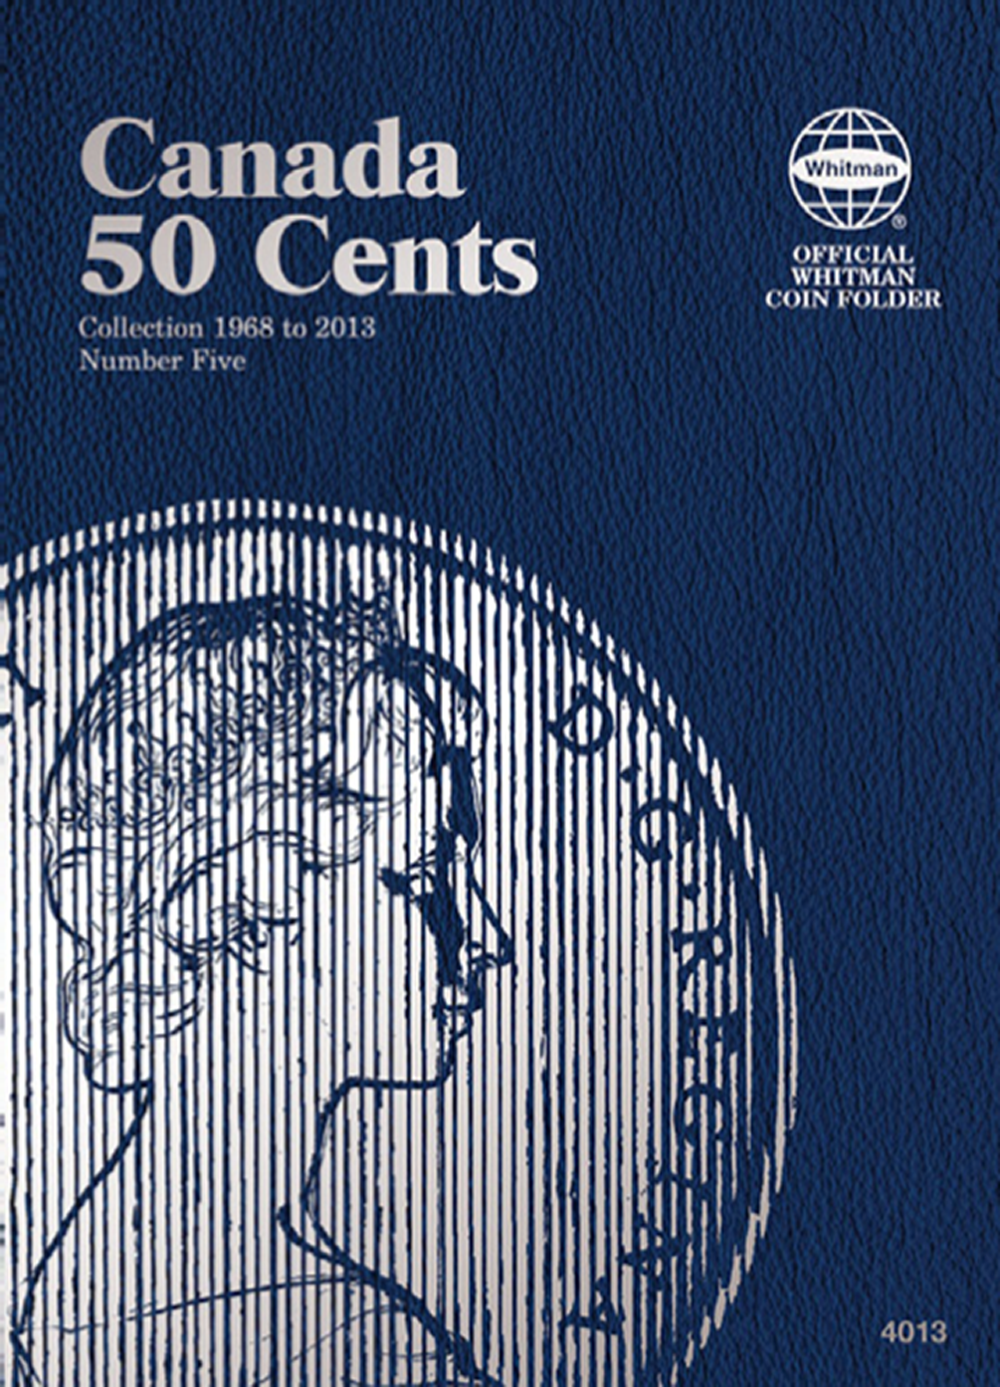 Whitman Canadian 50 Cent Coin Folder 1968 - 2013